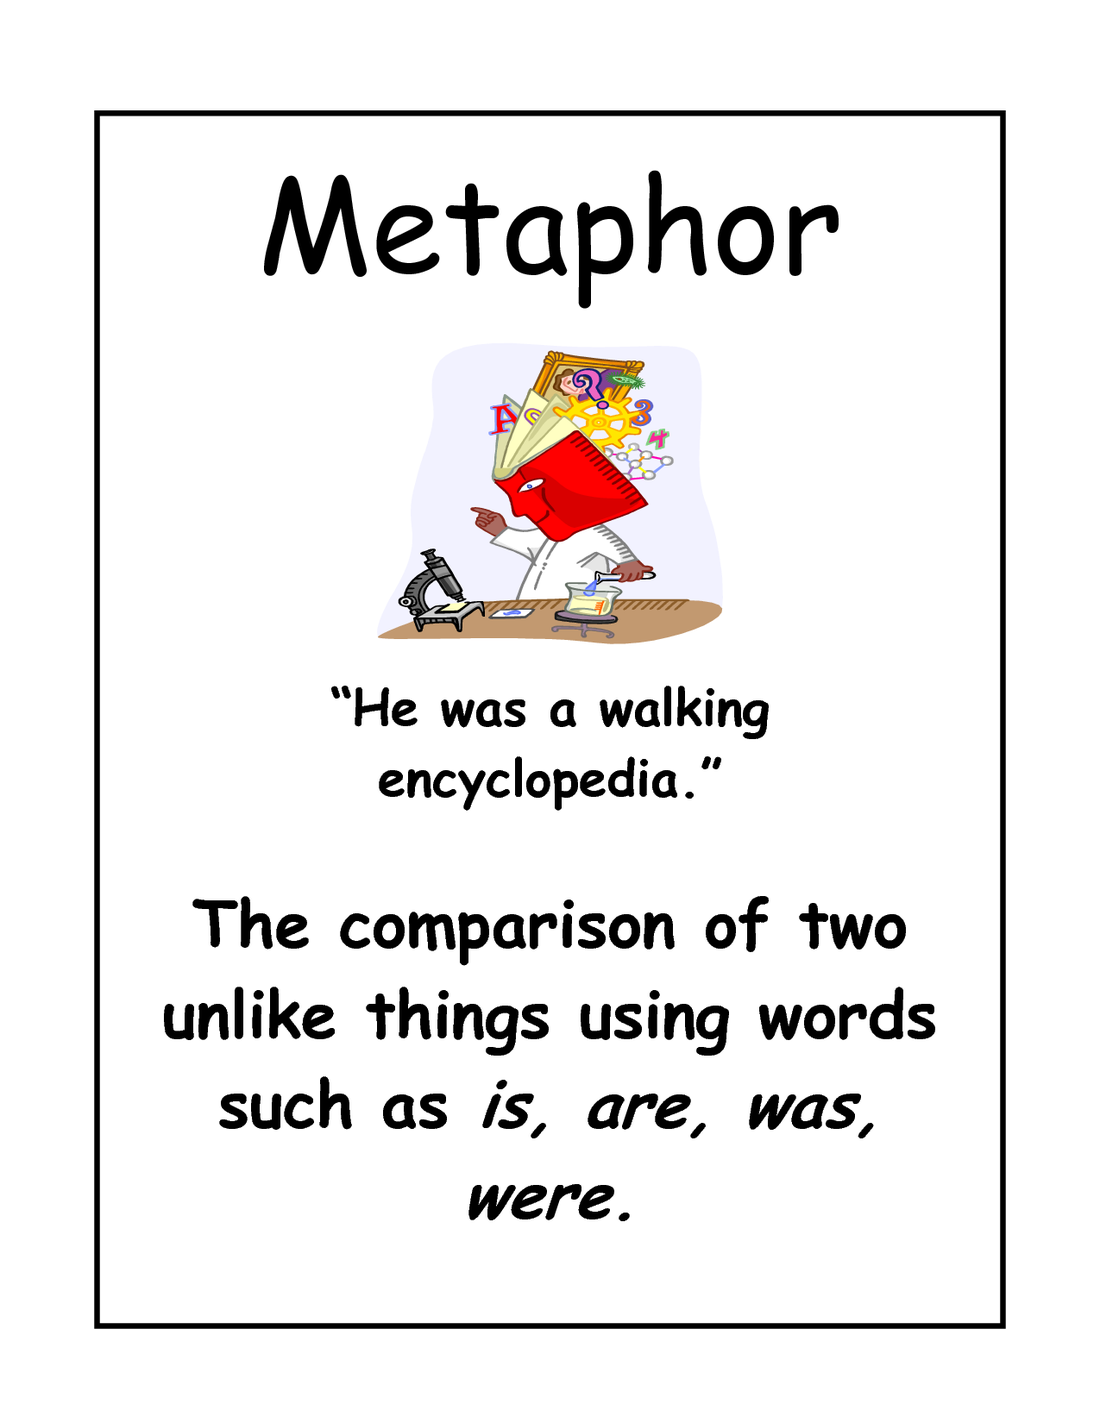 Act essay literature examples of metaphor